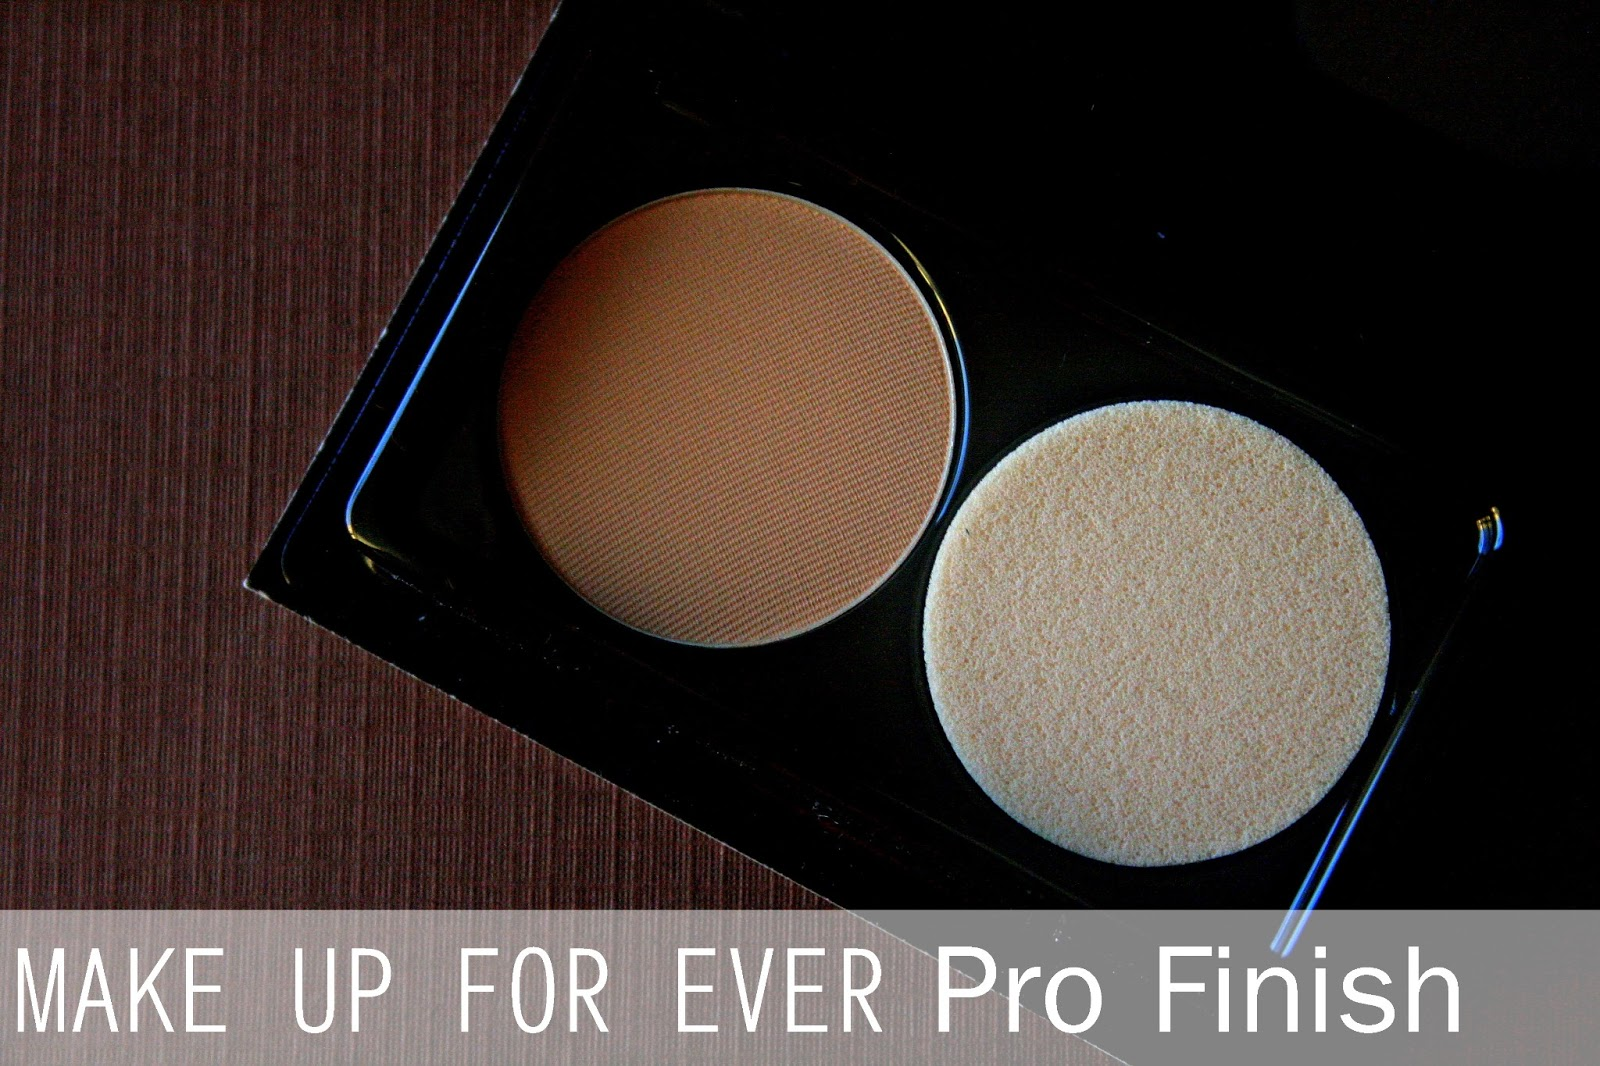 Make Up For Ever Pro Finish Multi-Use Powder Foundation #128